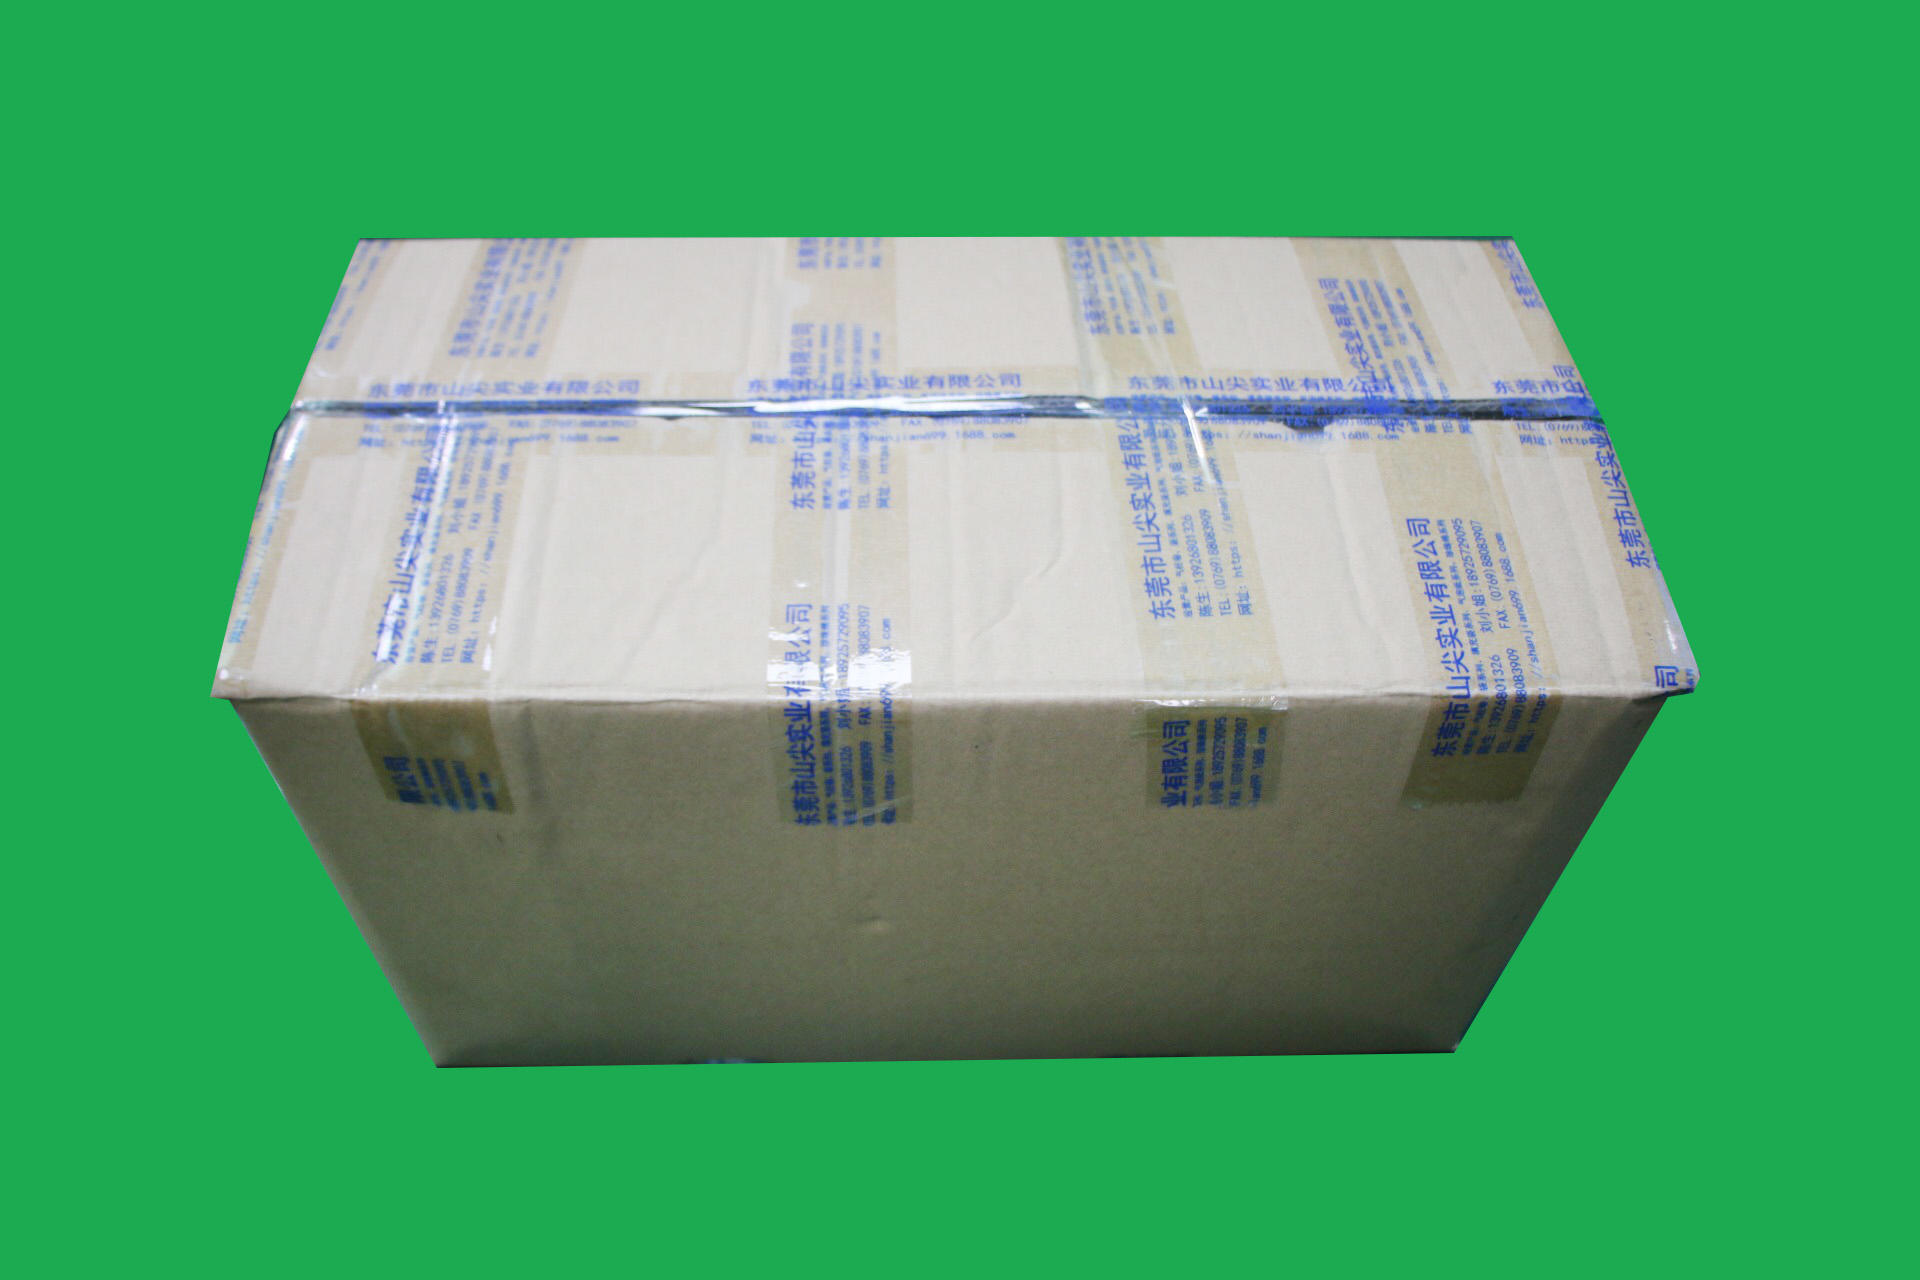 Sunshinepack ODM pillow manufacturers in ahmedabad manufacturers for goods